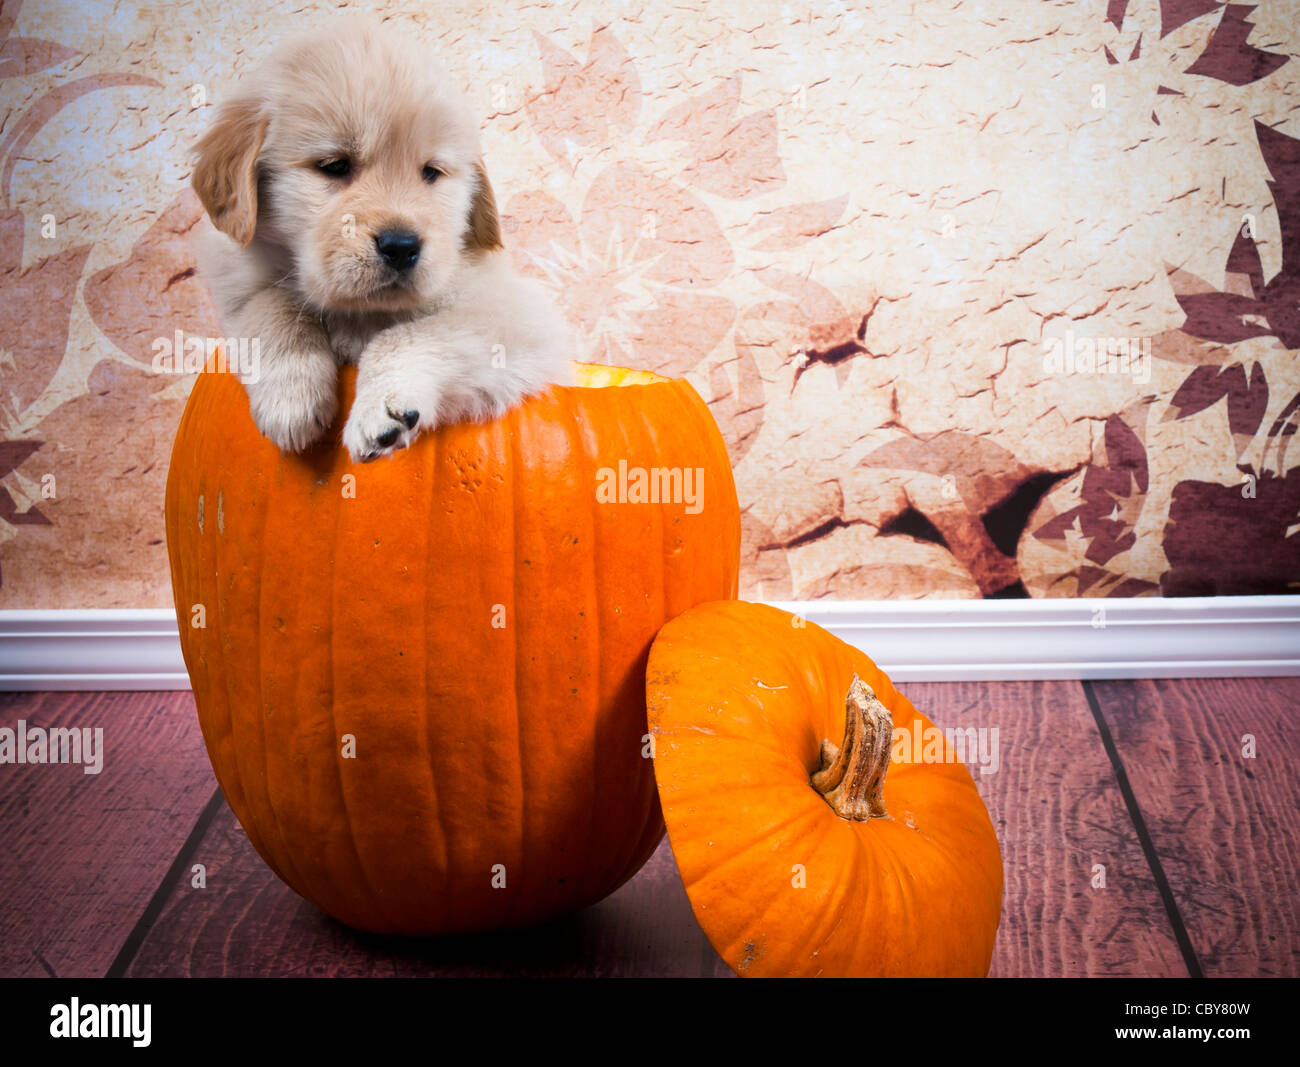 7 week old golden retriever puppy sitting in a pumpkin hollowed out to be made into a jack o lantern for halloween